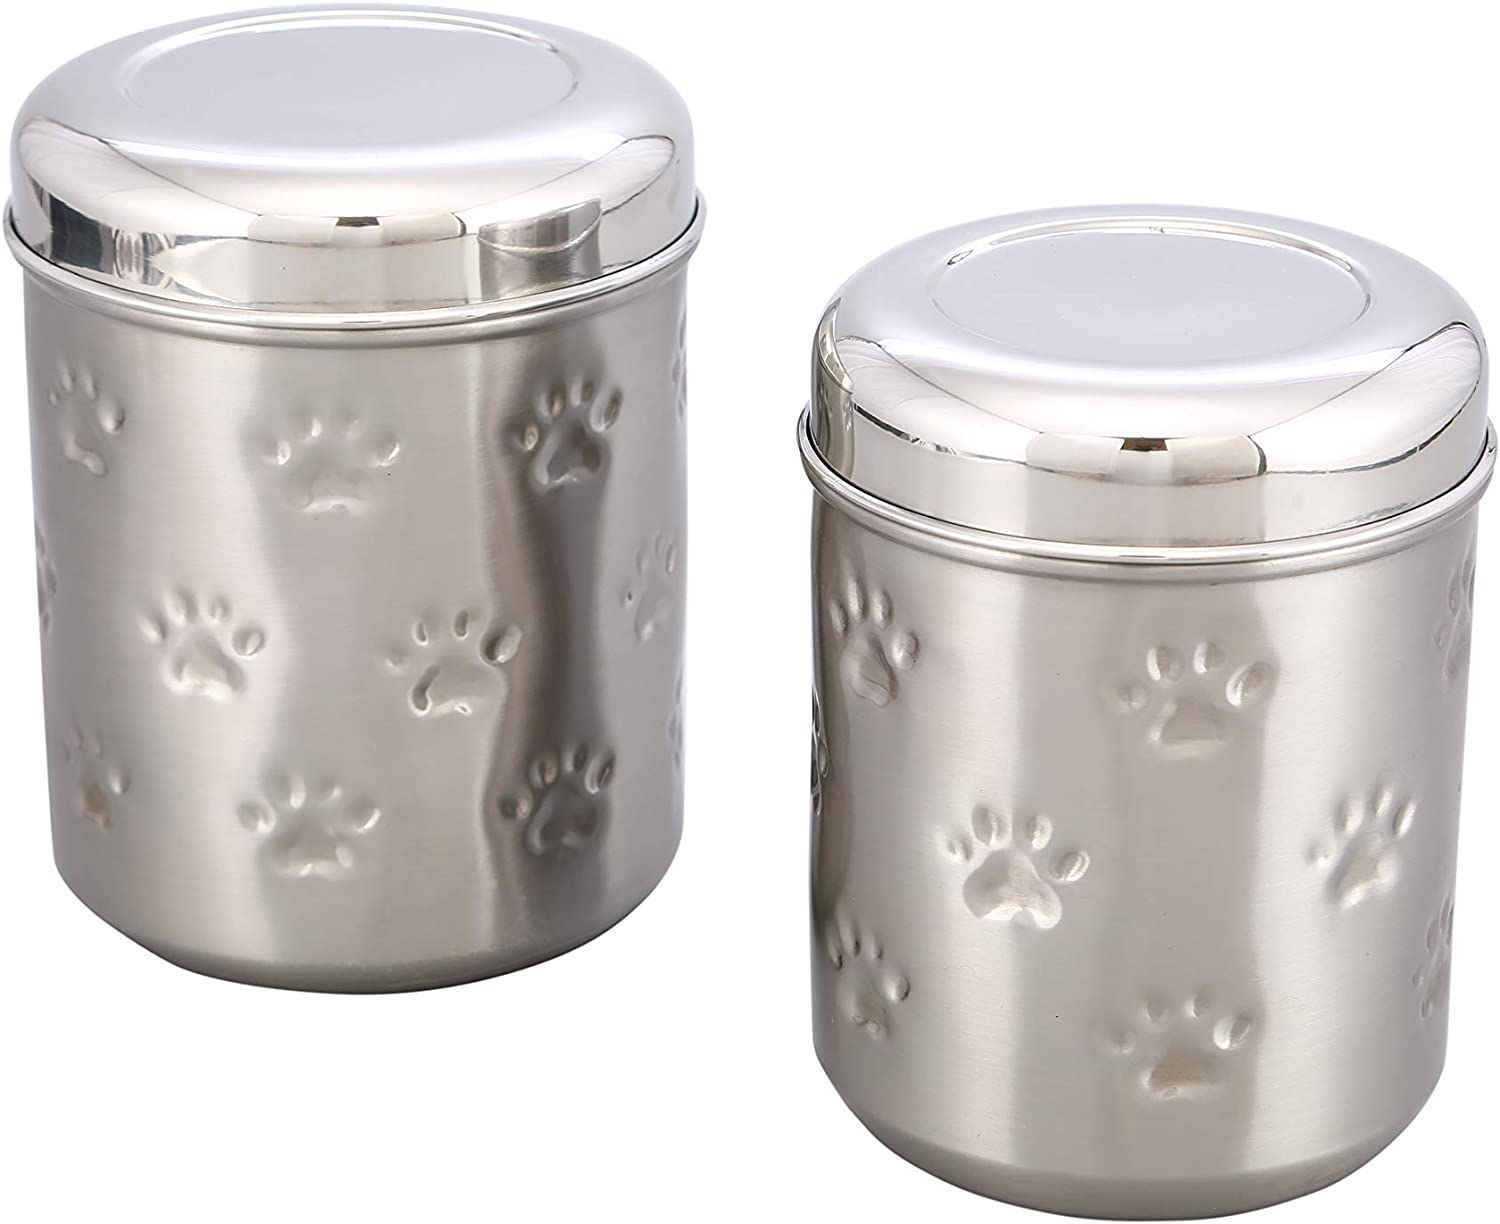 Artisans Village Pet Canisters Fresh Dry Dog & Cat Food Storage Container Stainless Steel for Pet Food, and Bird Seed Shine (Large) - Amazon Vine